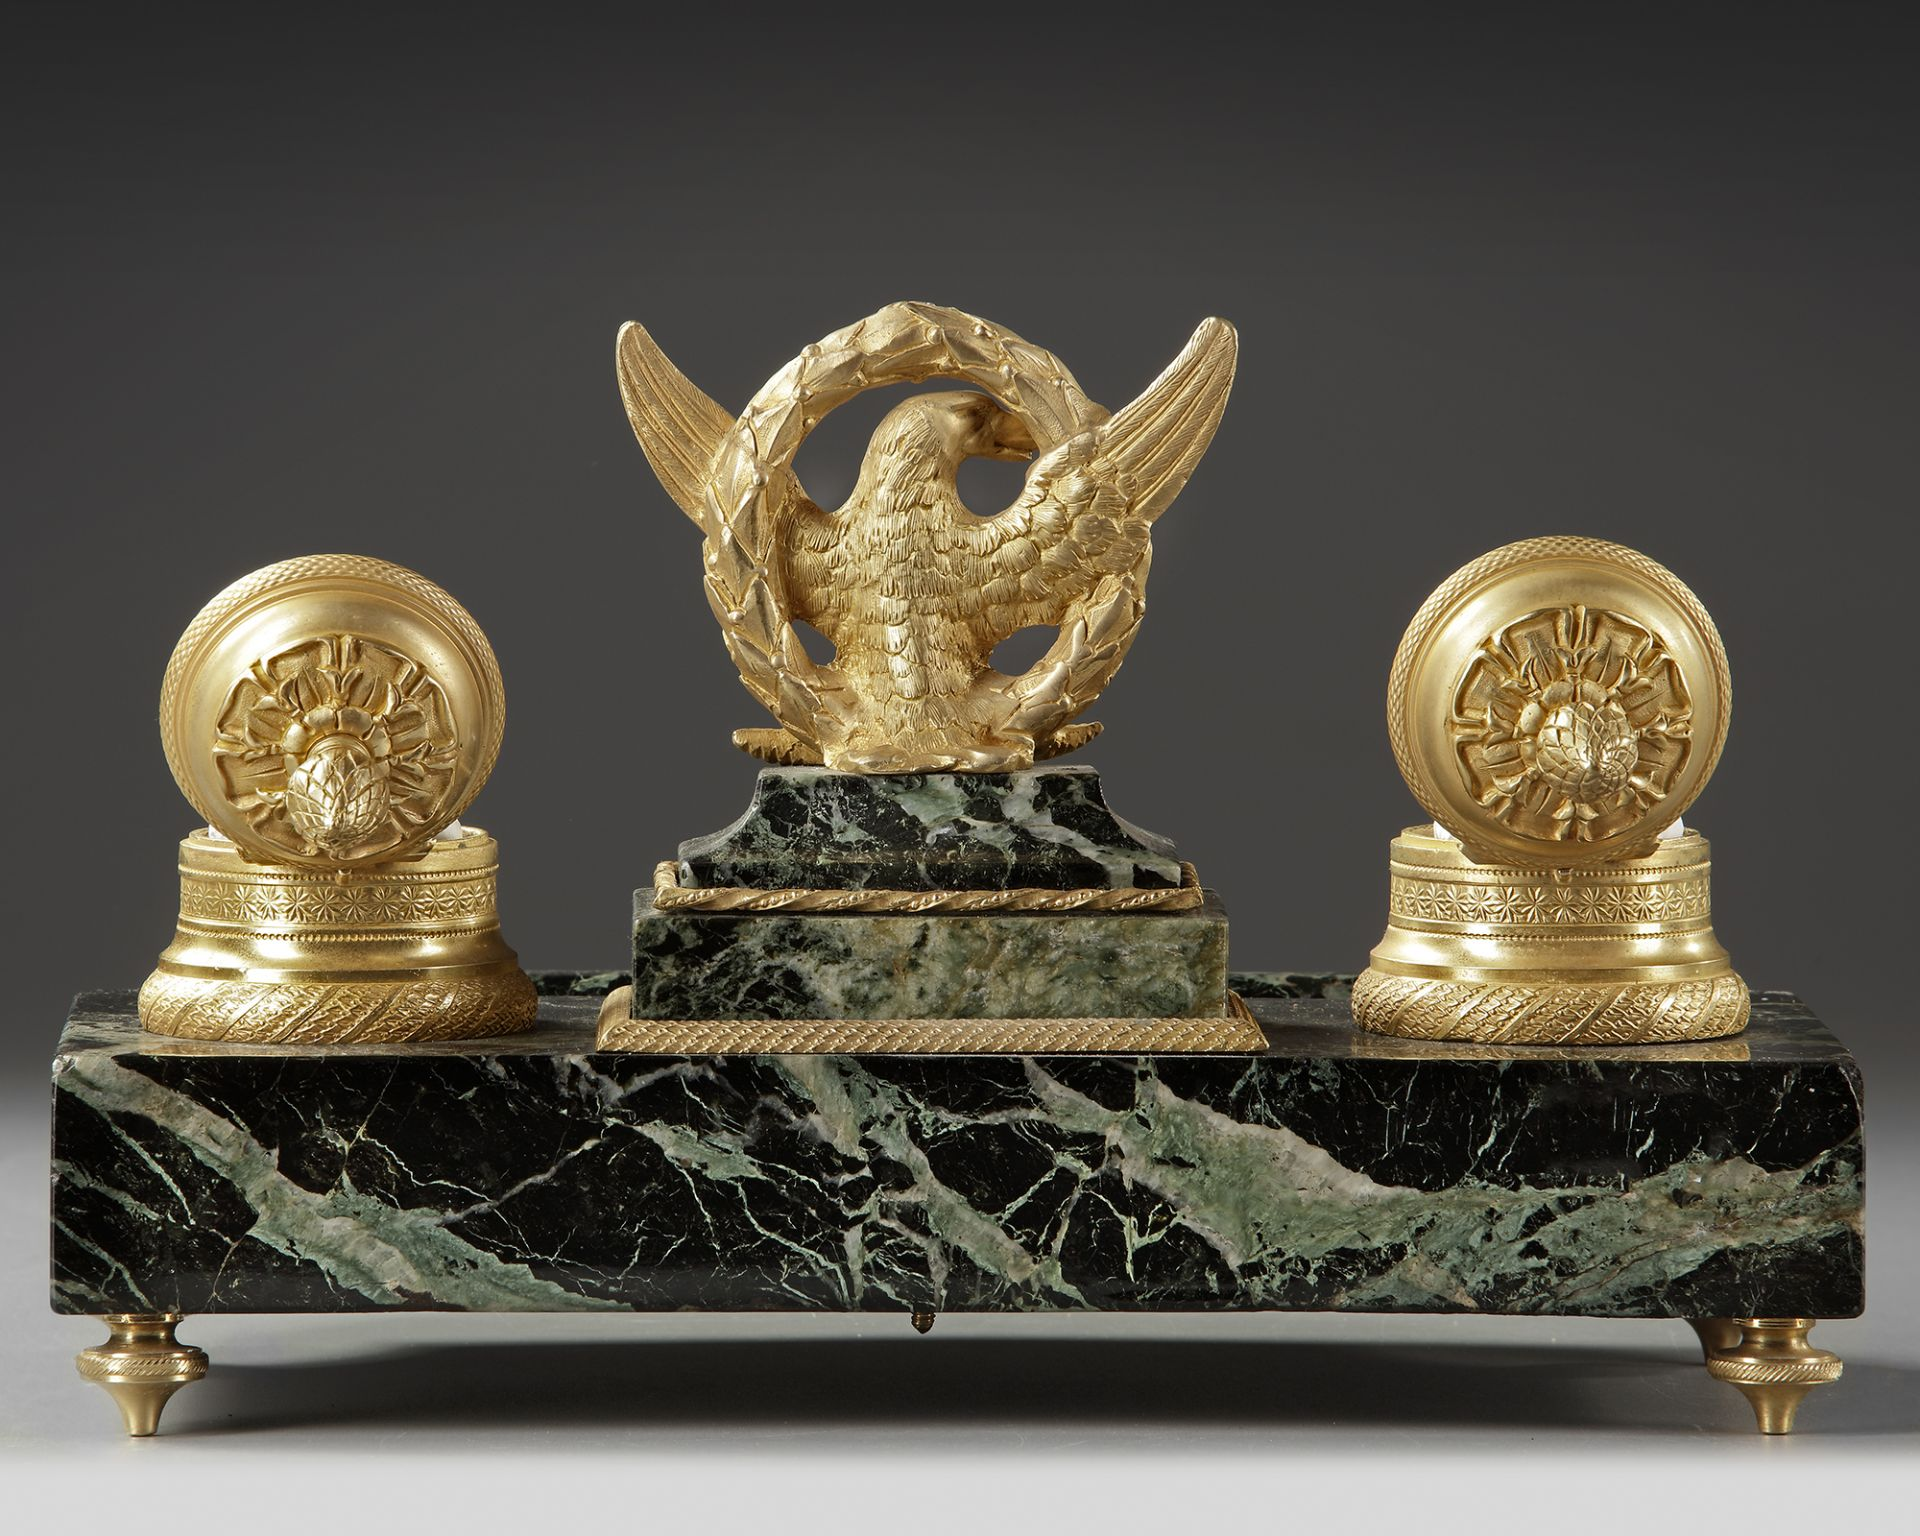 A FRENCH 'EMPIRE STYLE' INKWELL SET, LATE 19TH CENTURY - Image 2 of 3